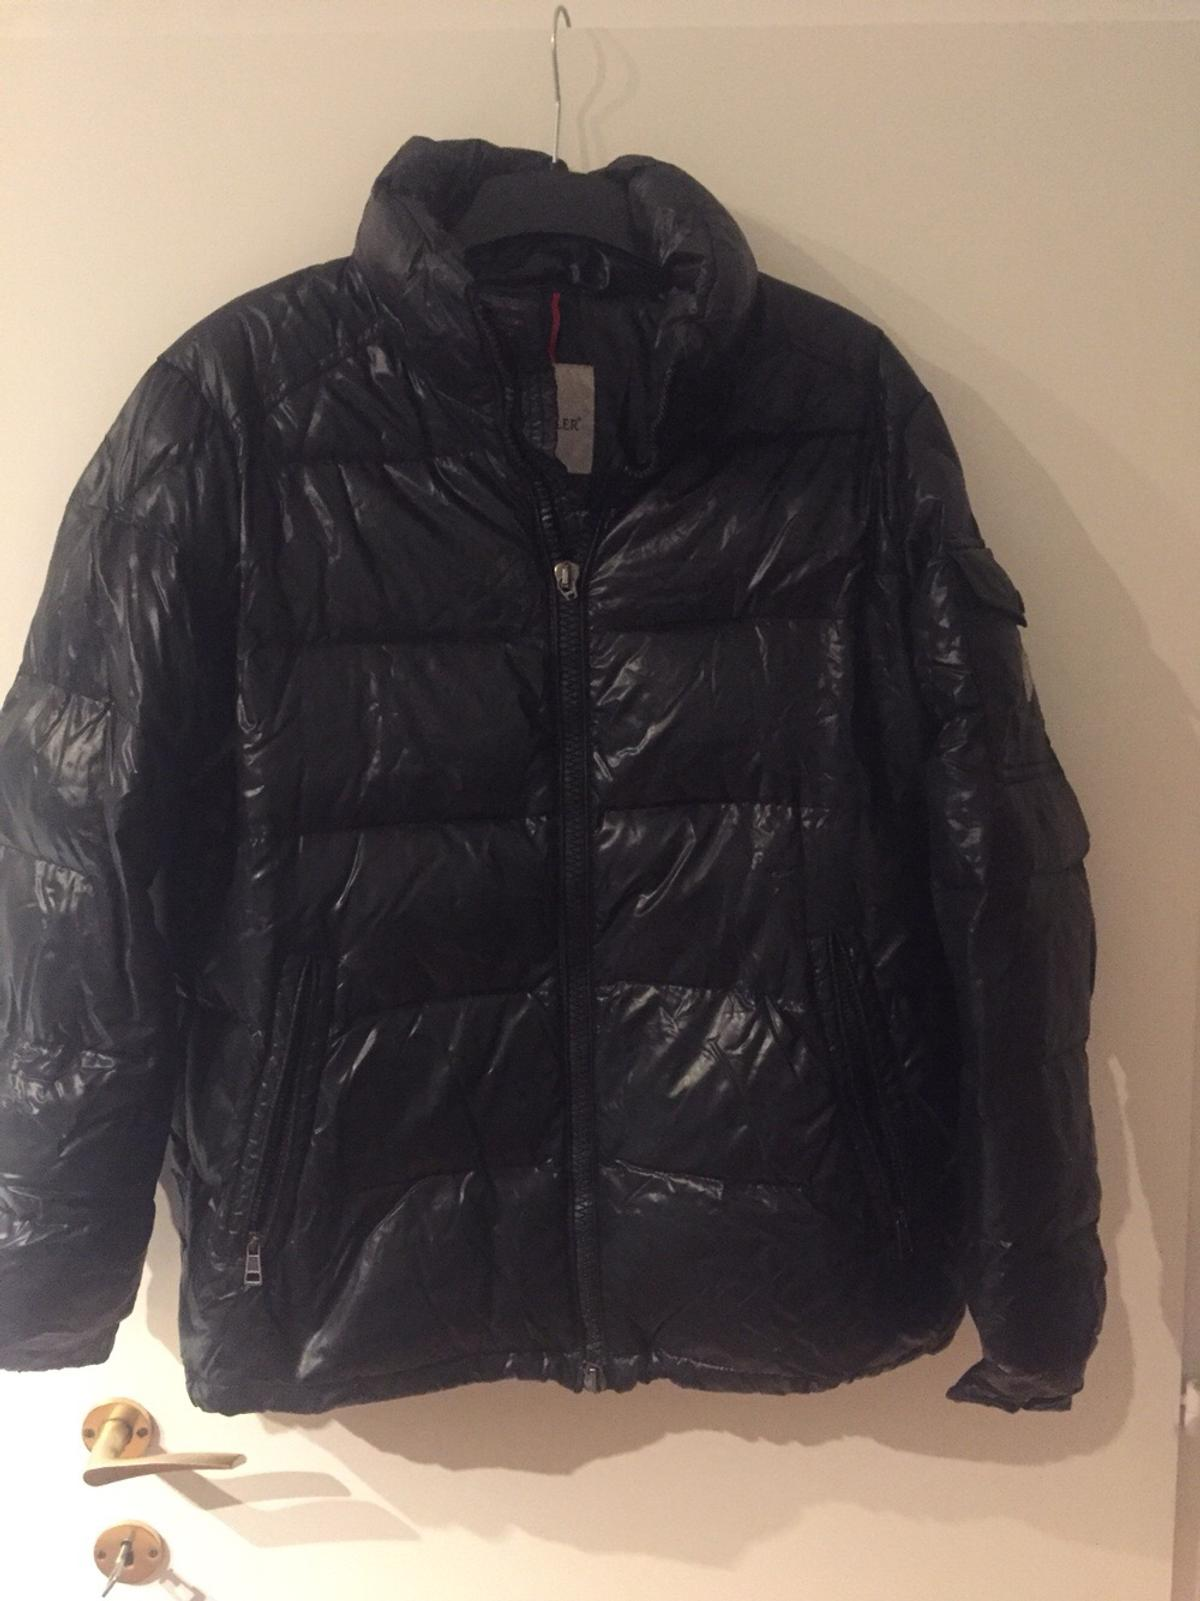 Moncler for Jacke 1190 €40 for in saleShpock Wien 00 3RqA4jL5